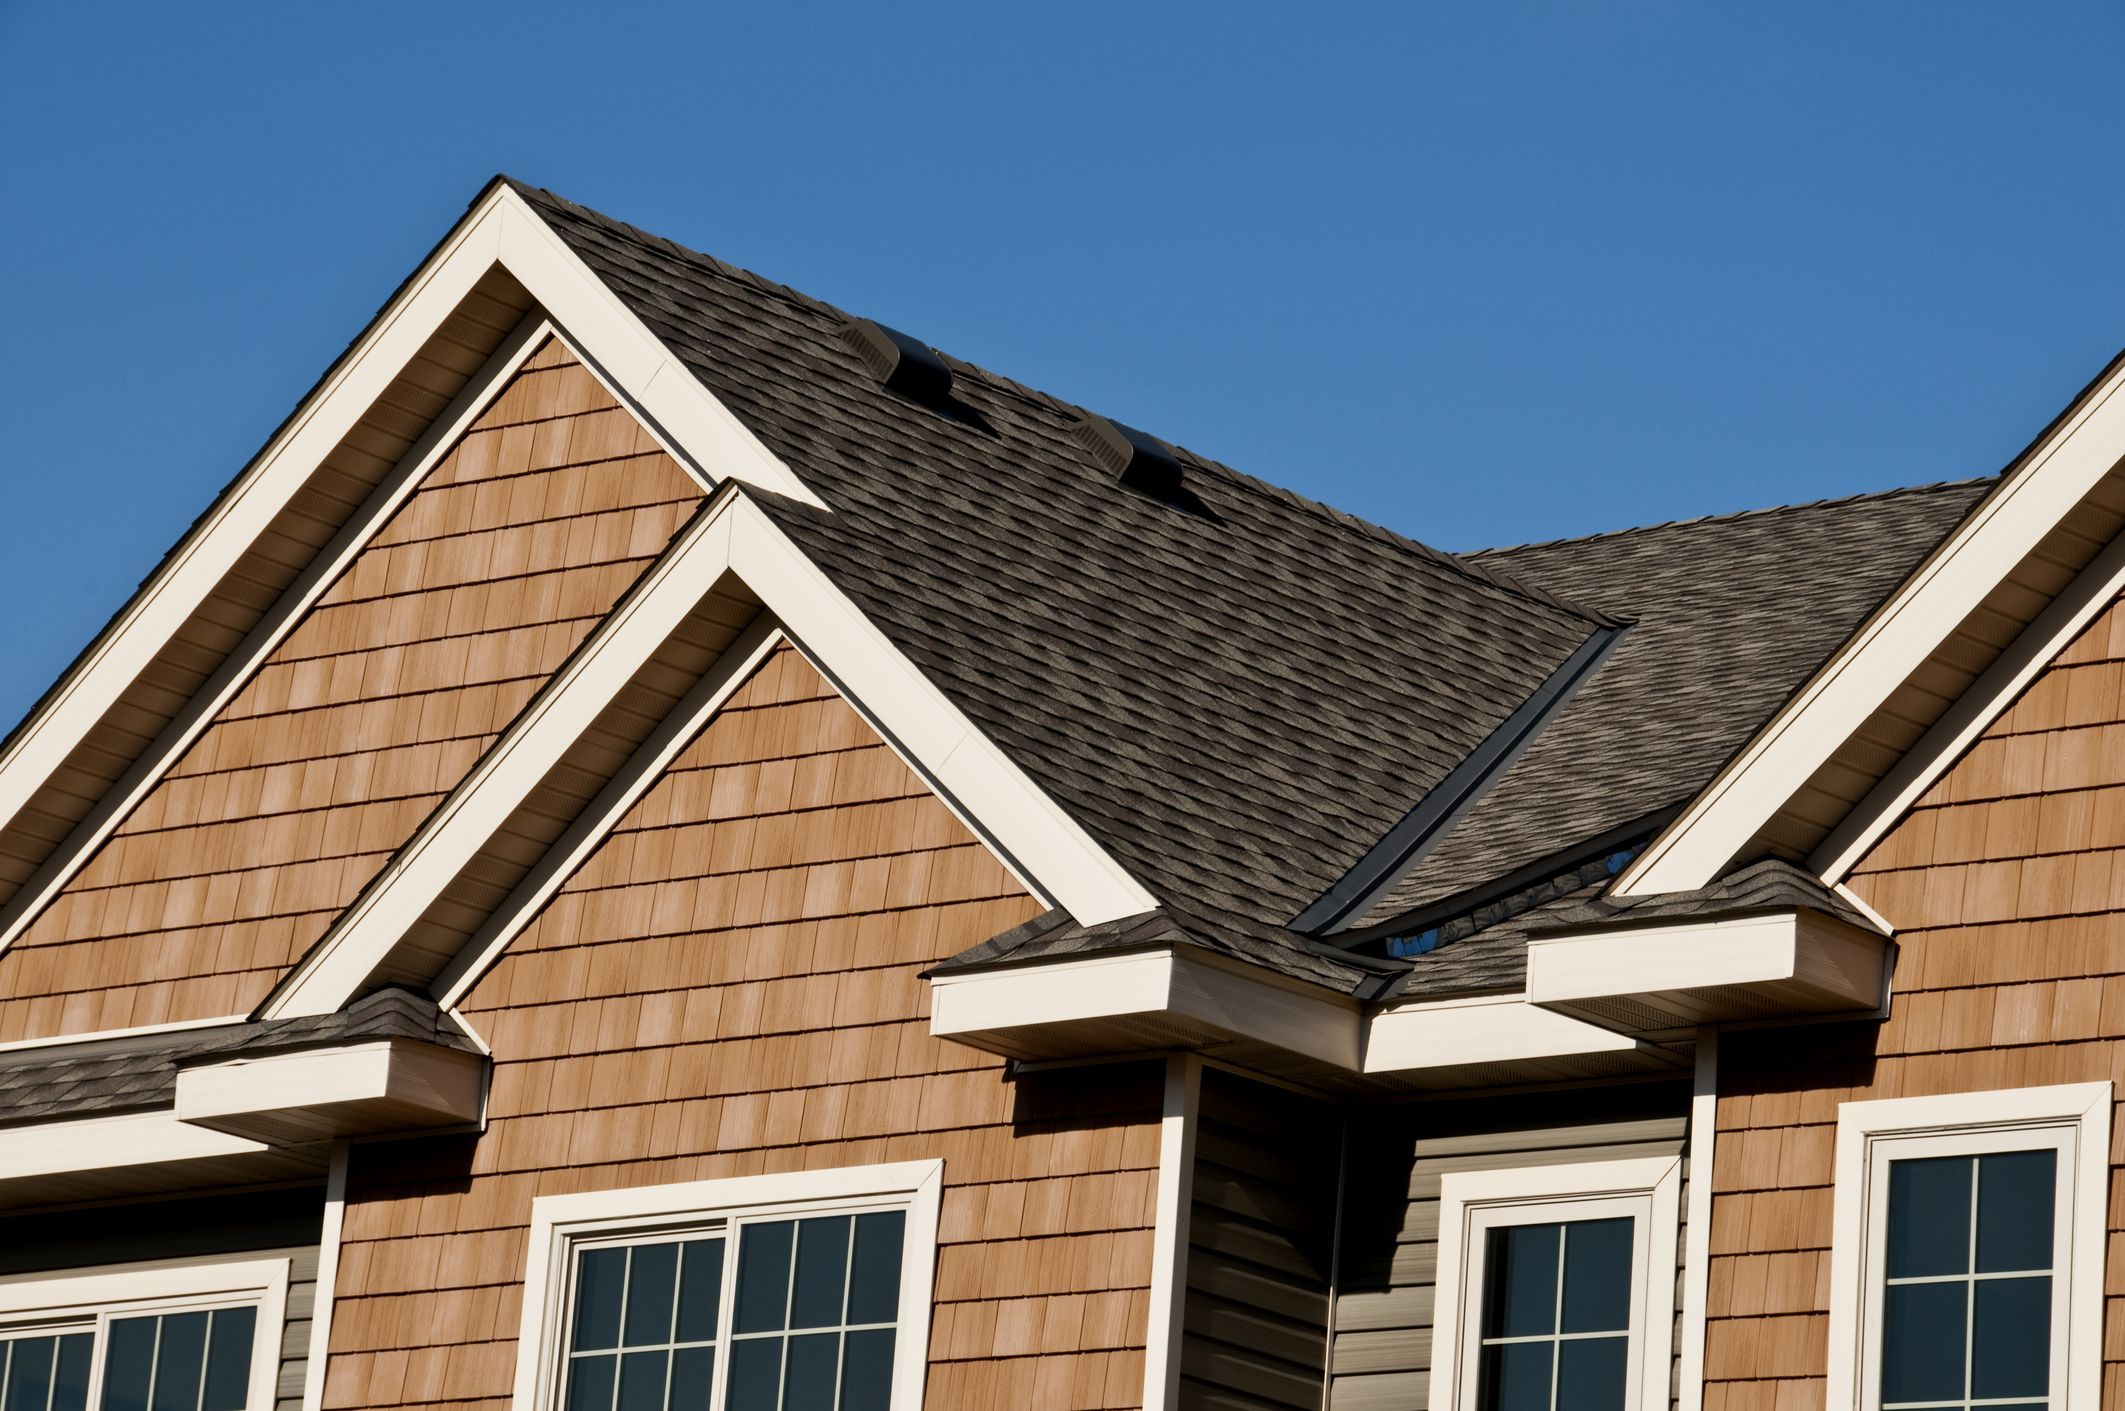 Create natural ventilation in your attic by installing a